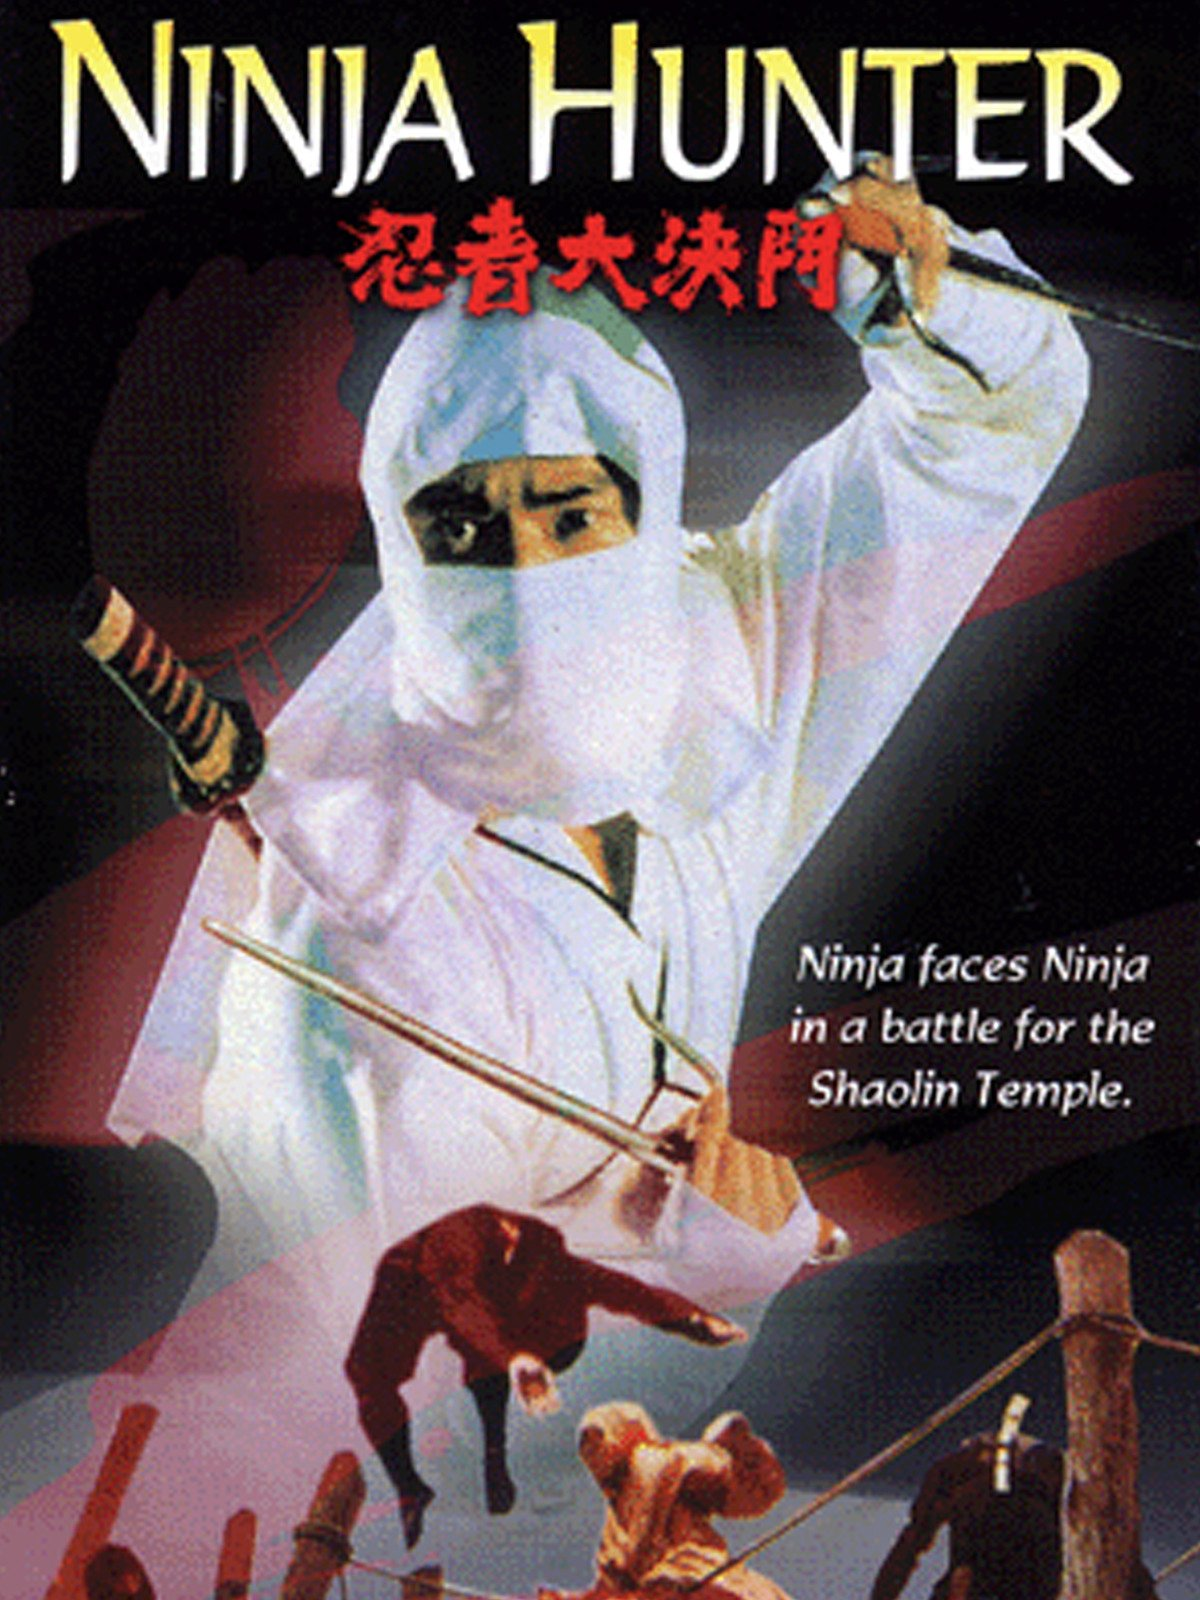 Amazon.com: Watch The Ninja Hunter | Prime Video